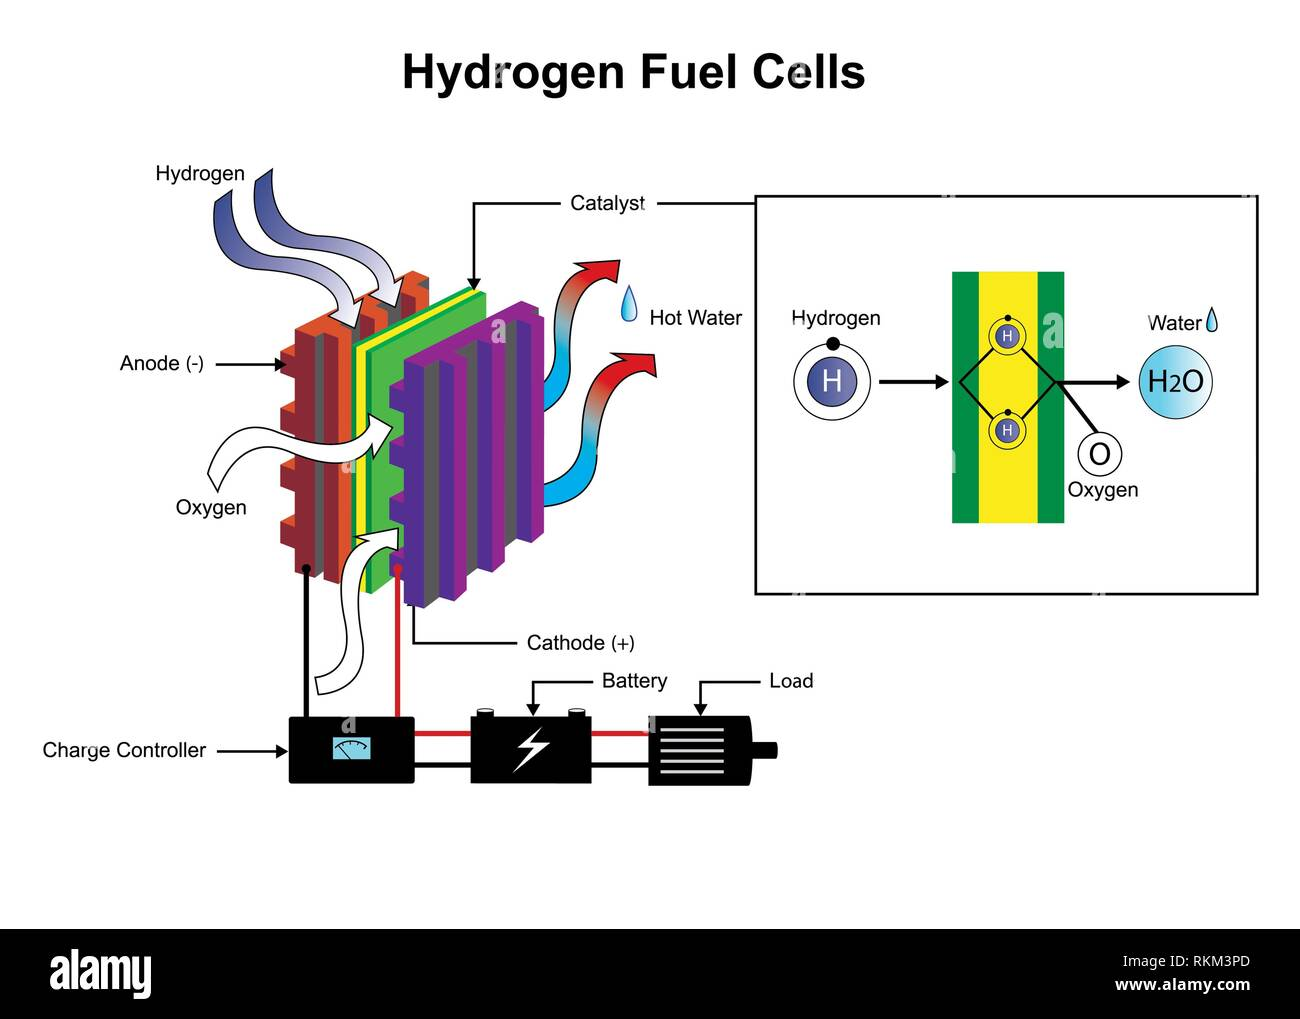 hight resolution of hydrogen fuel cells diagram stock image